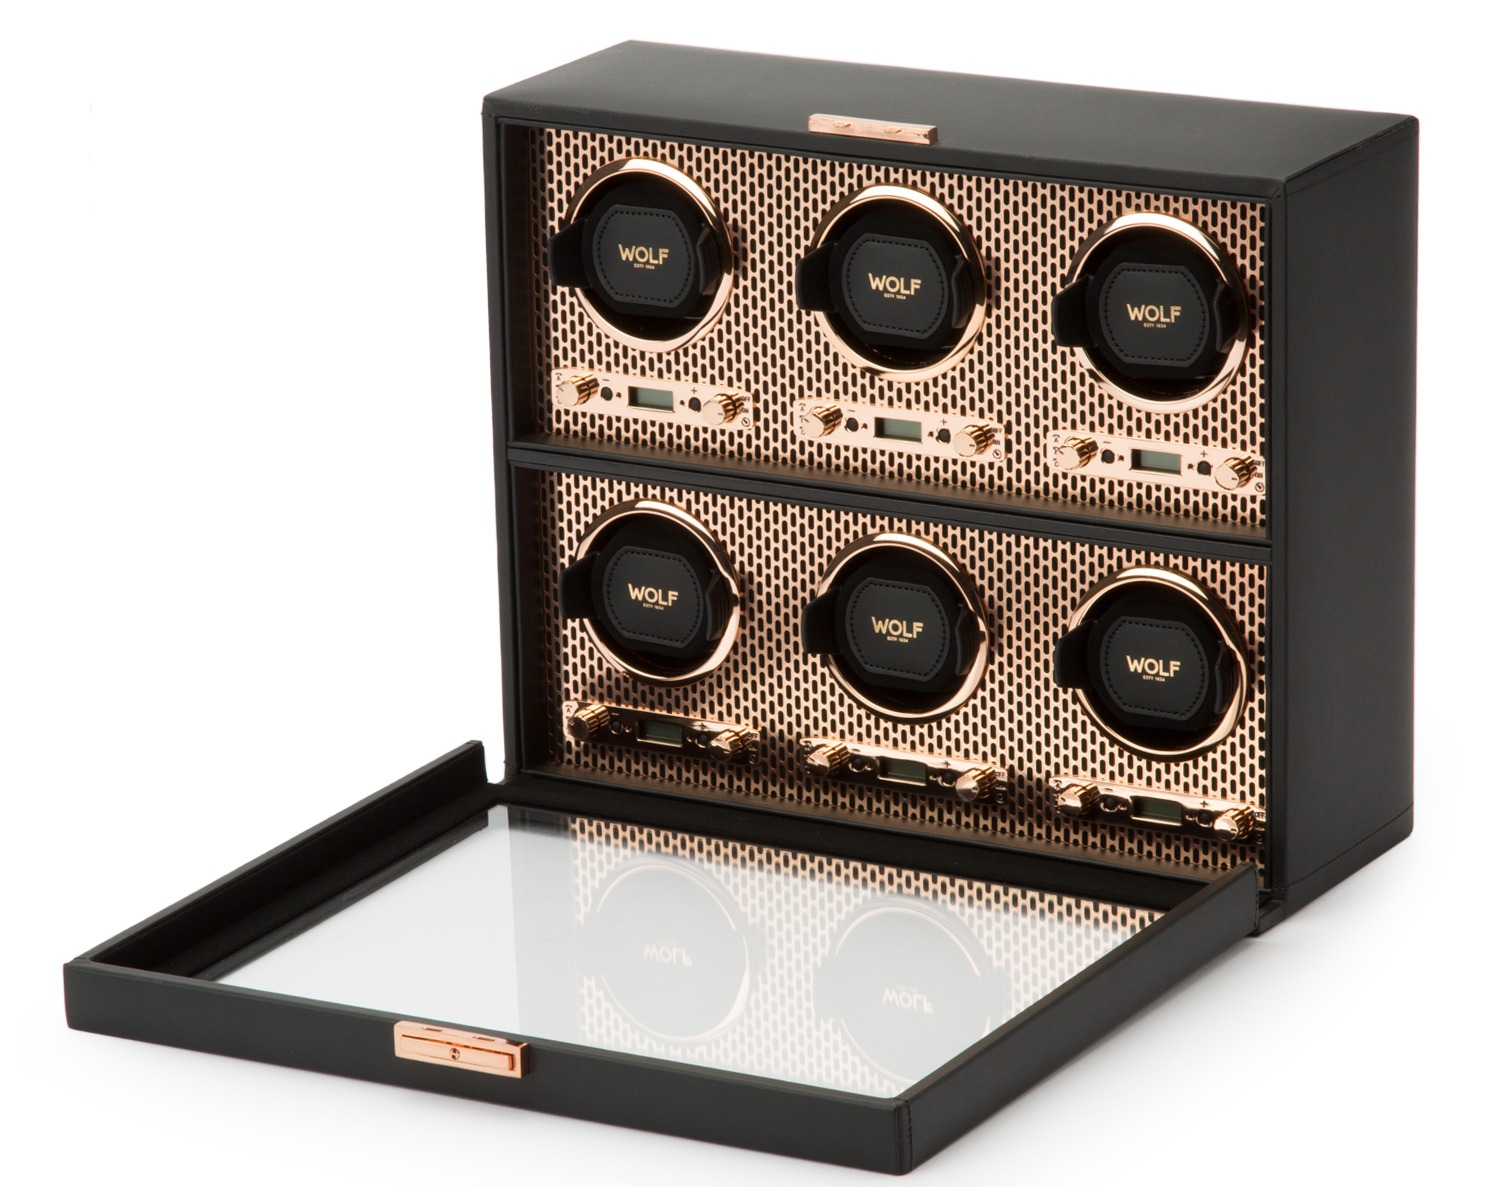 Wolfcopper Axis 6-piece Winder